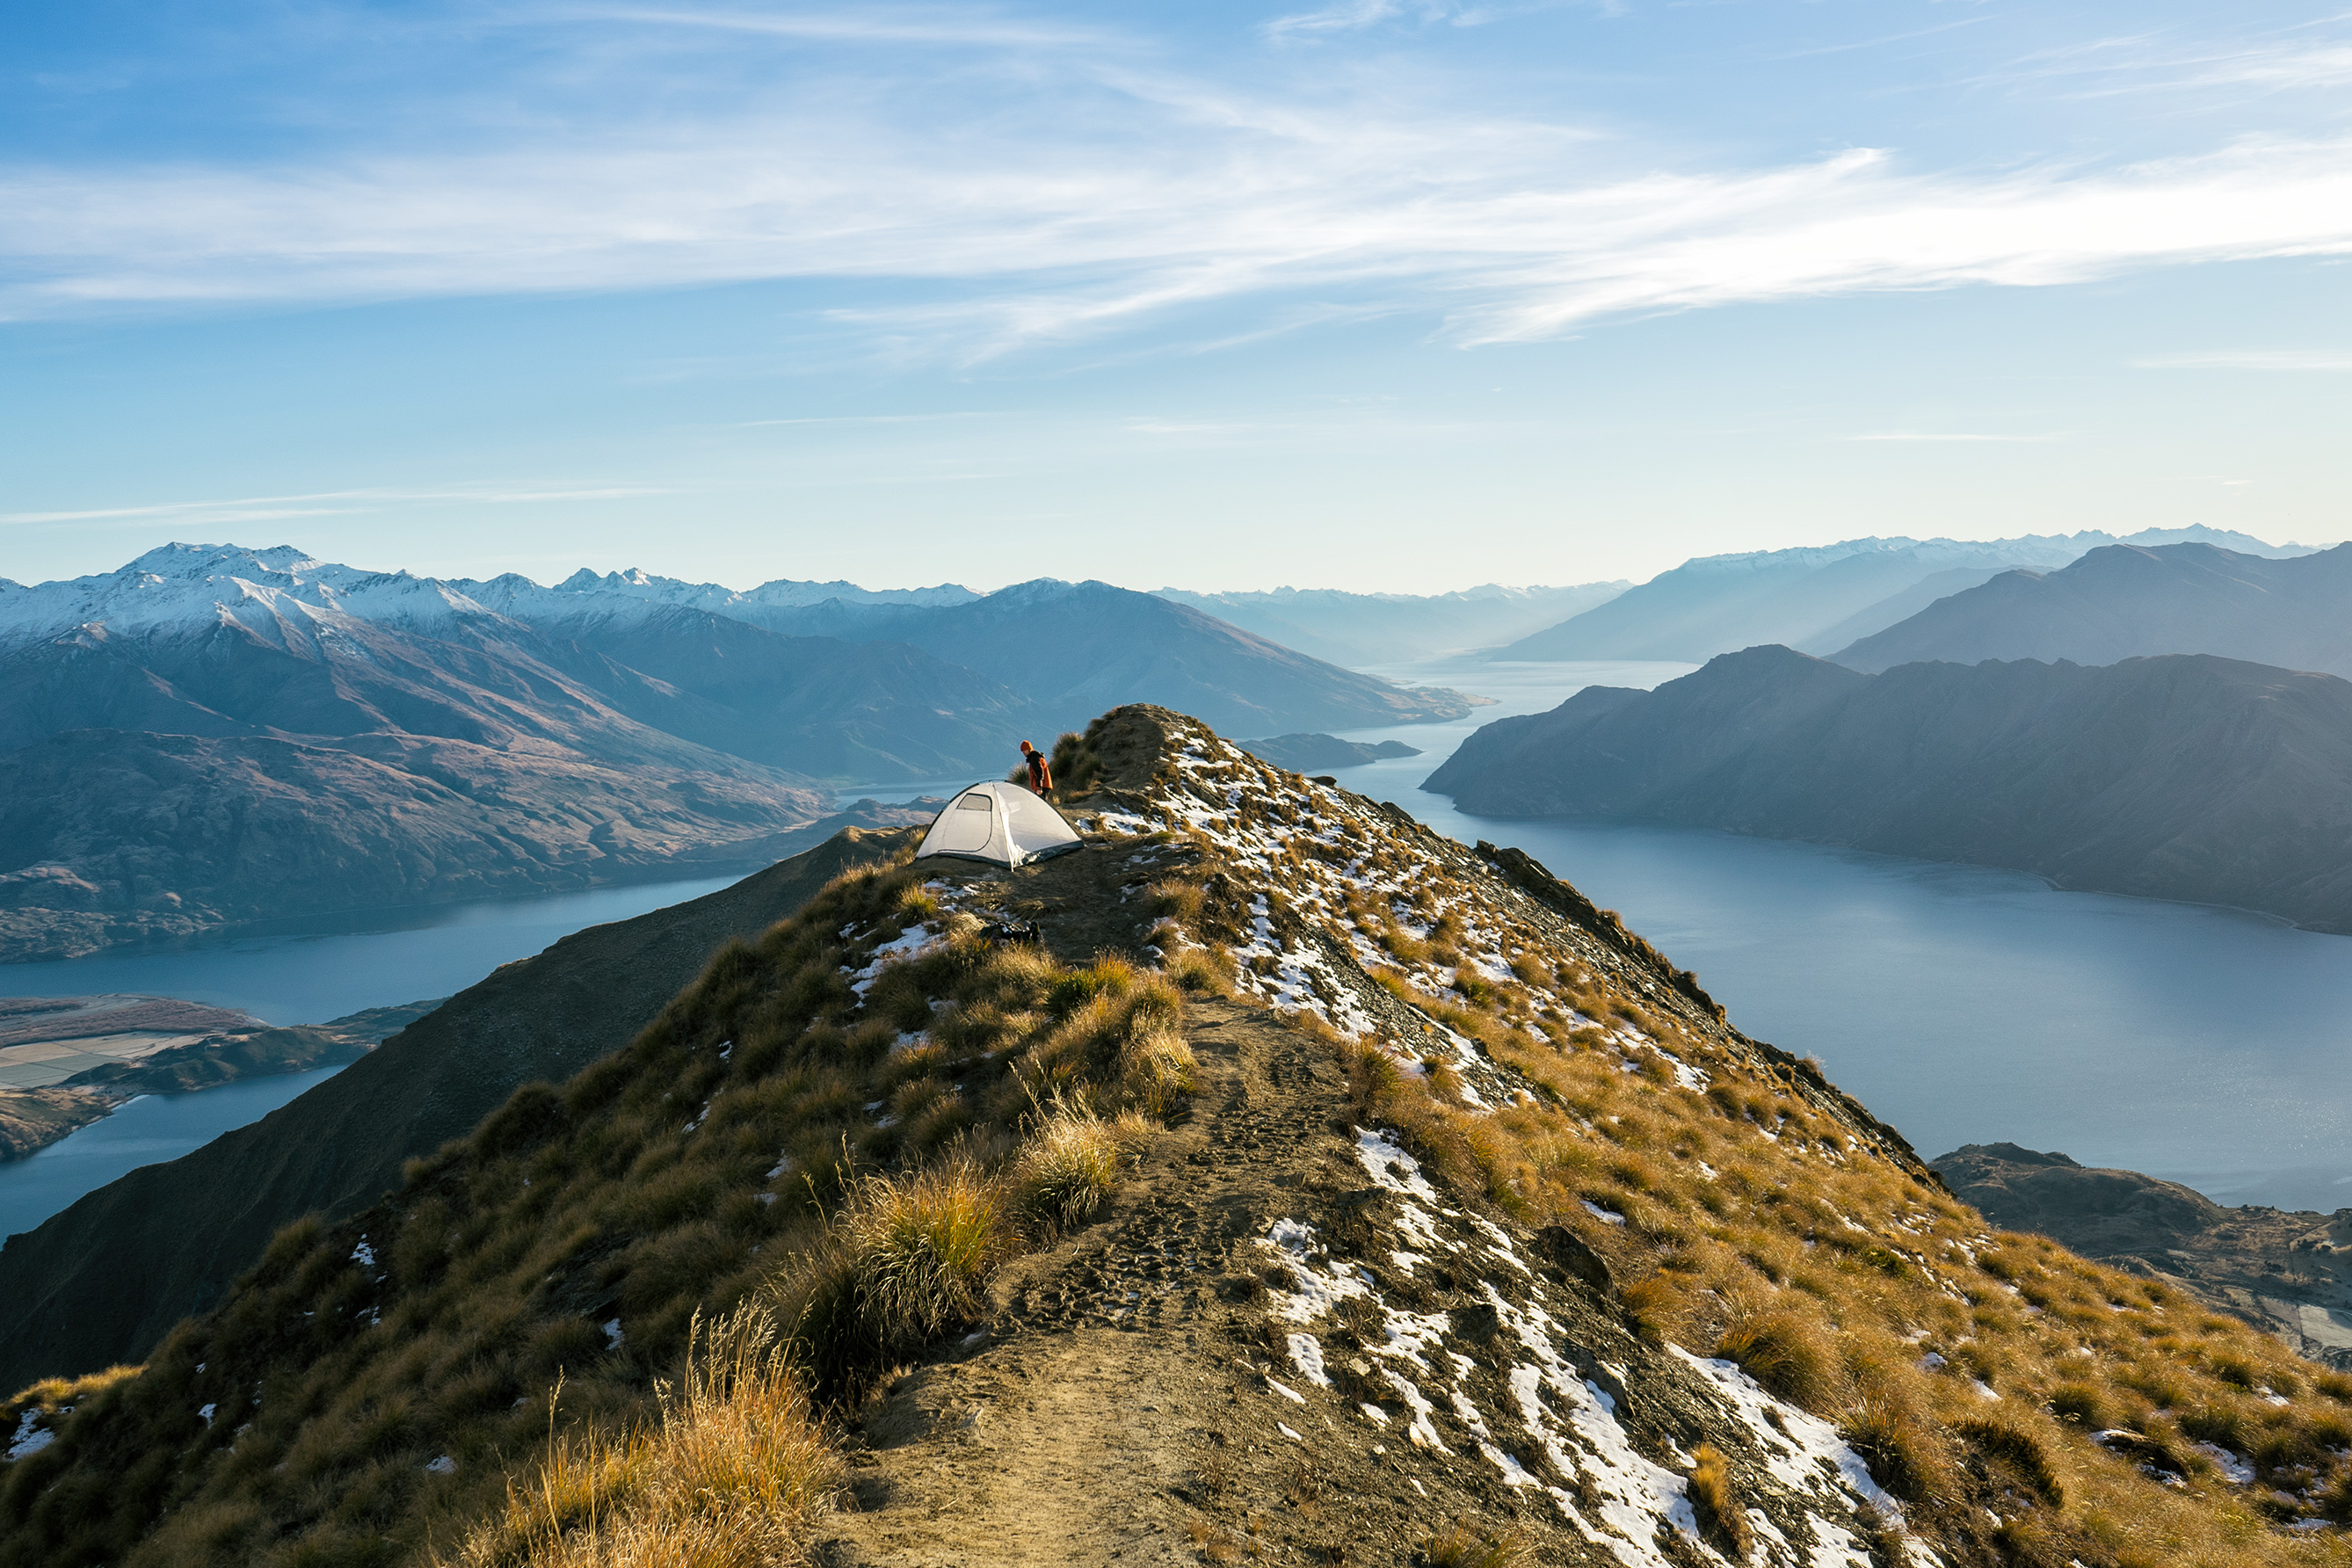 35 Photos That Will Inspire You To Visit New Zealand's South Island